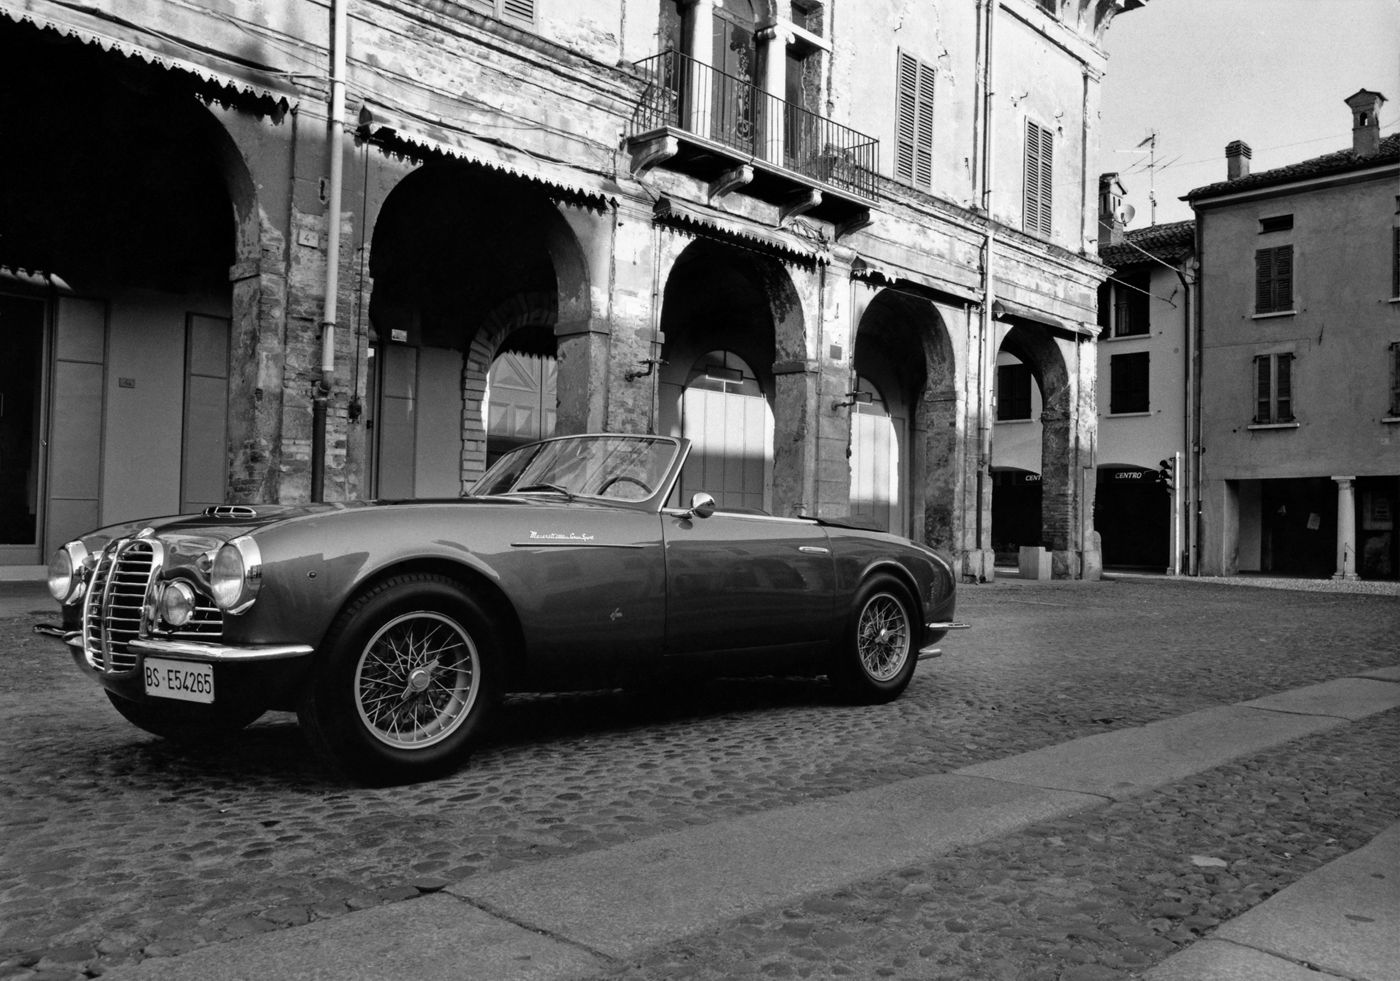 1950 Maserati A6G 2000 - the classic car model on an Italian road